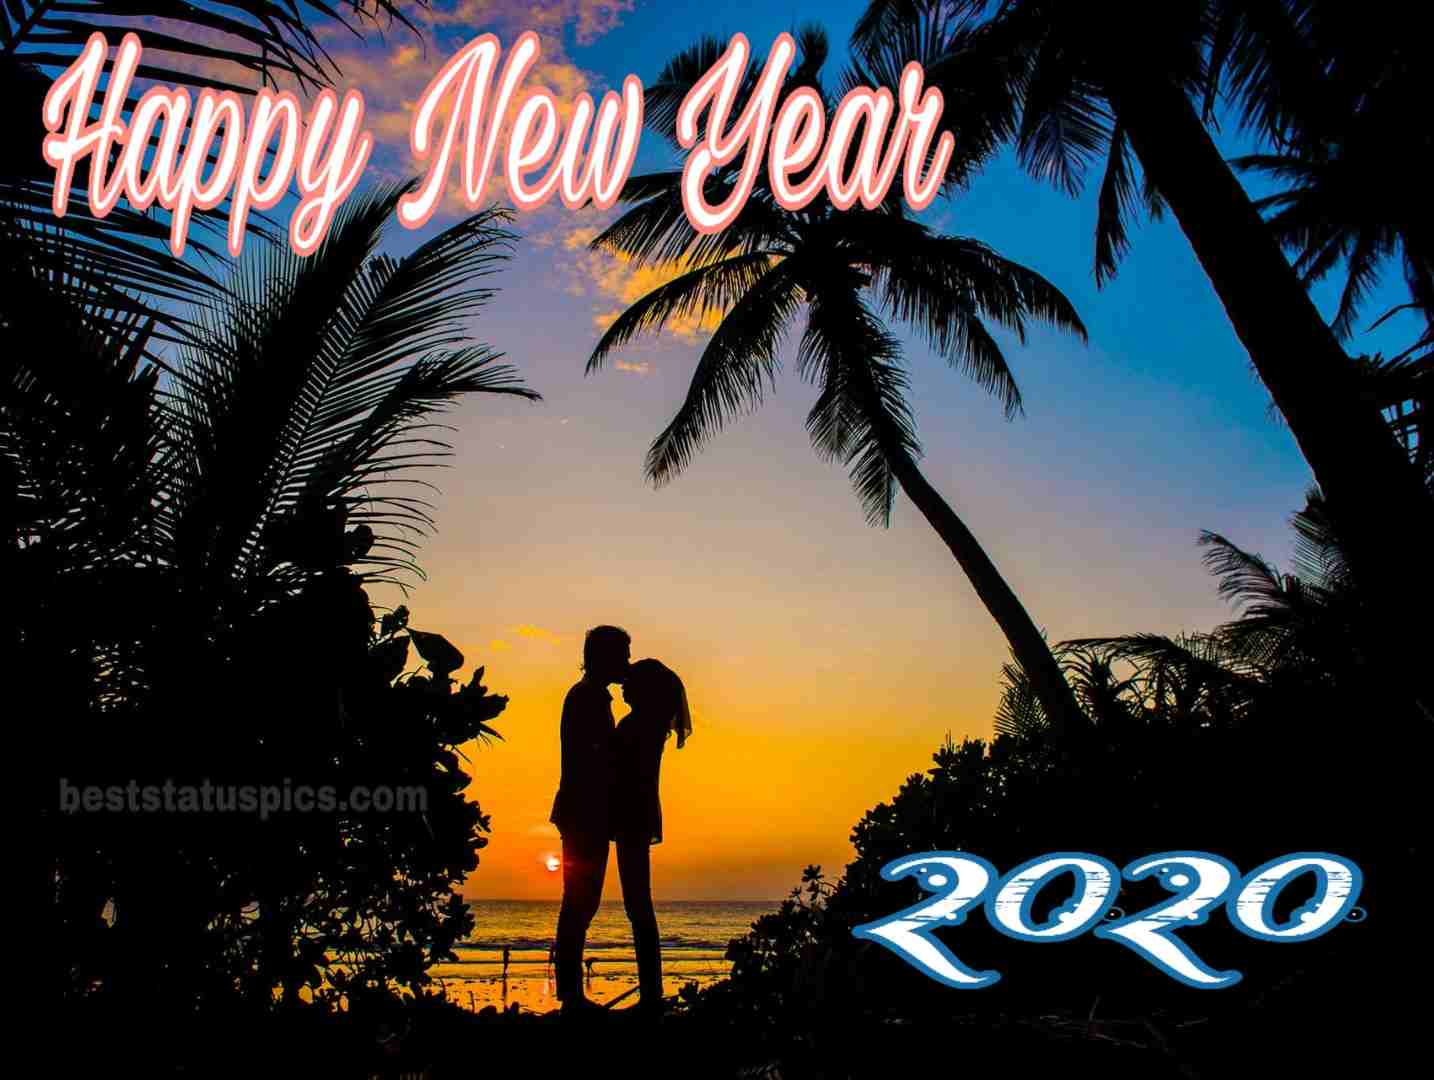 Happy New Year 2020 Image with love for Whatsapp message